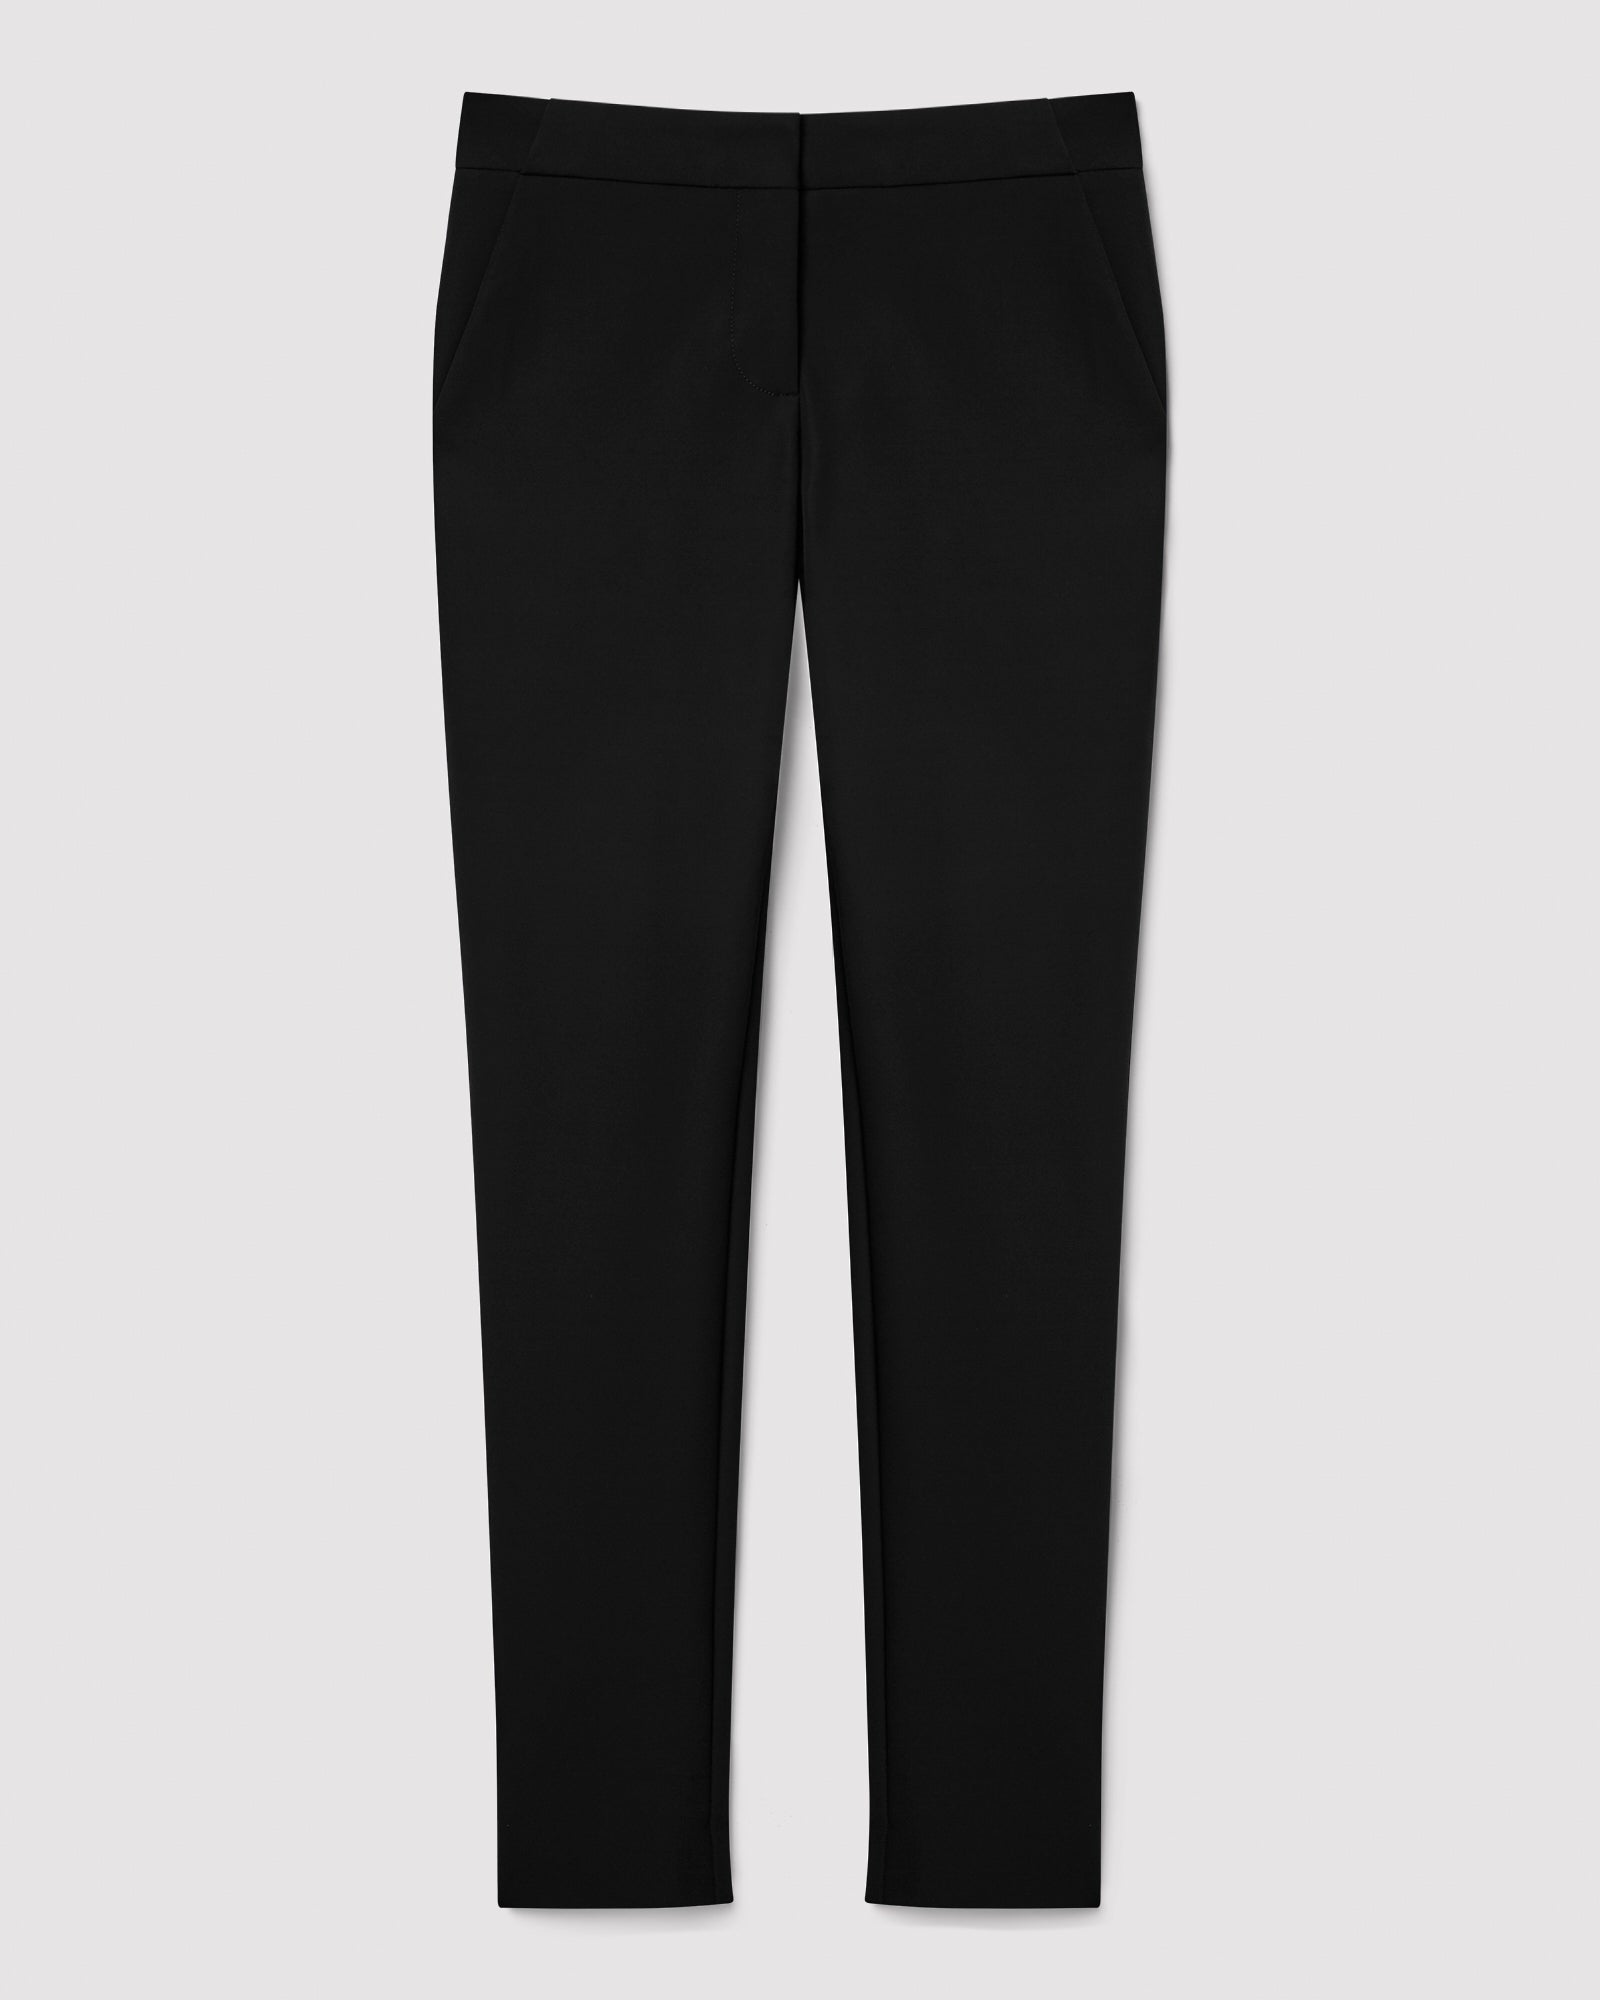 Power Move™ Trousers Black 2.0